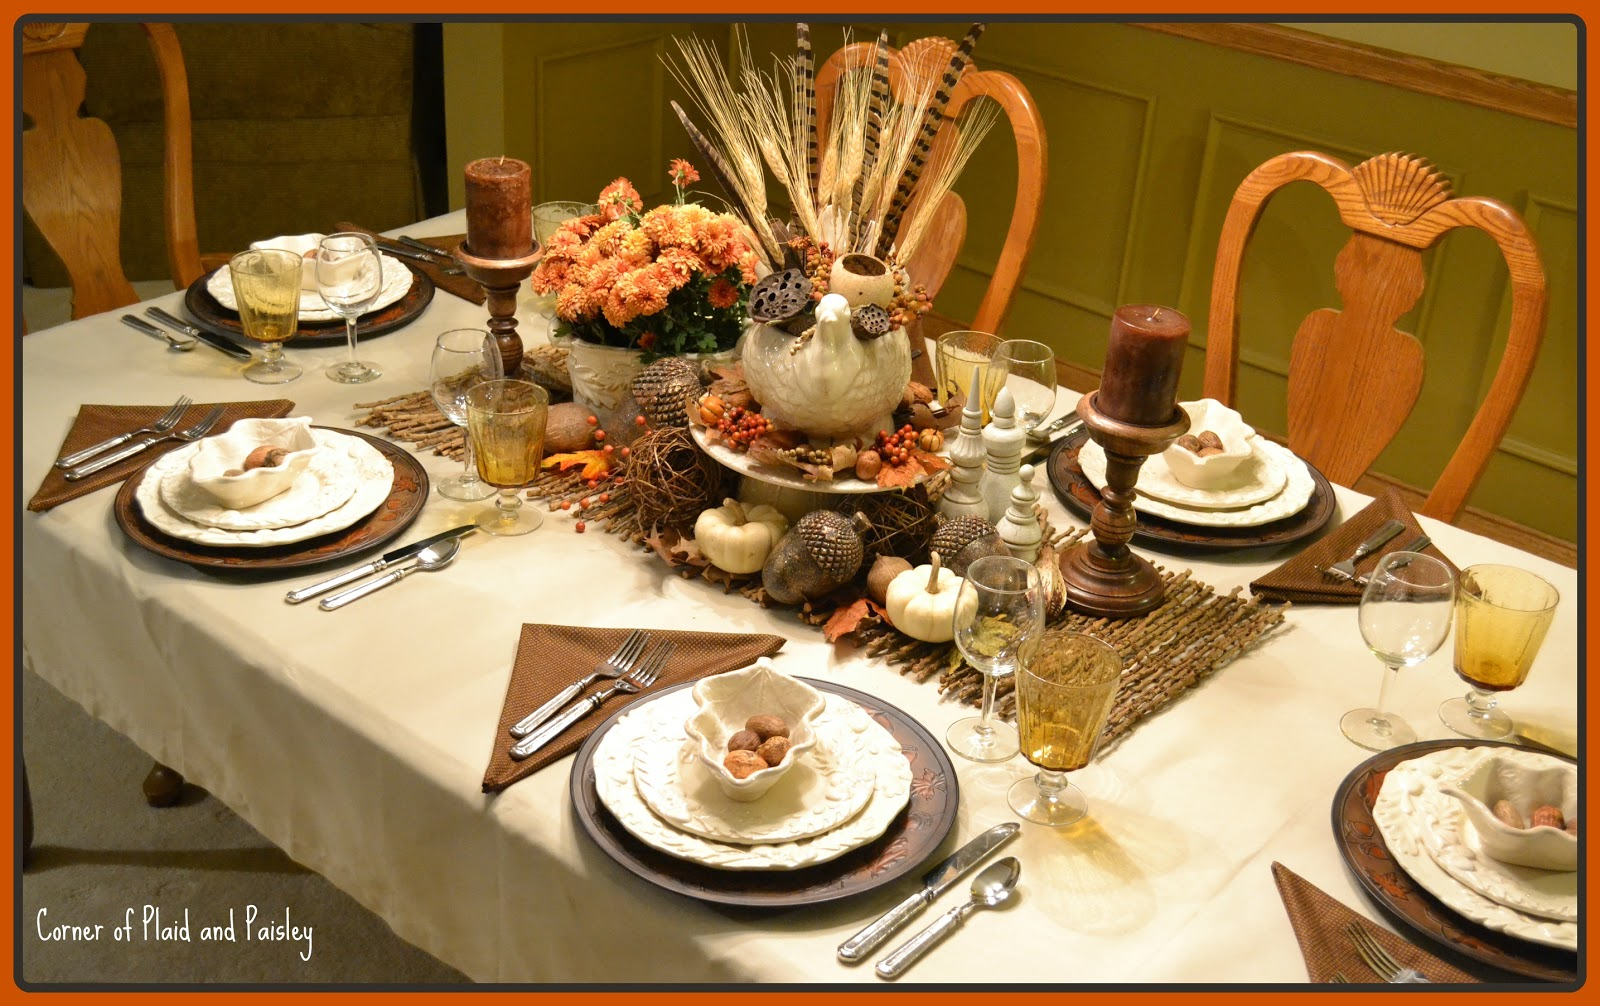 Corner of plaid and paisley thanksgiving table not the Thanksgiving table